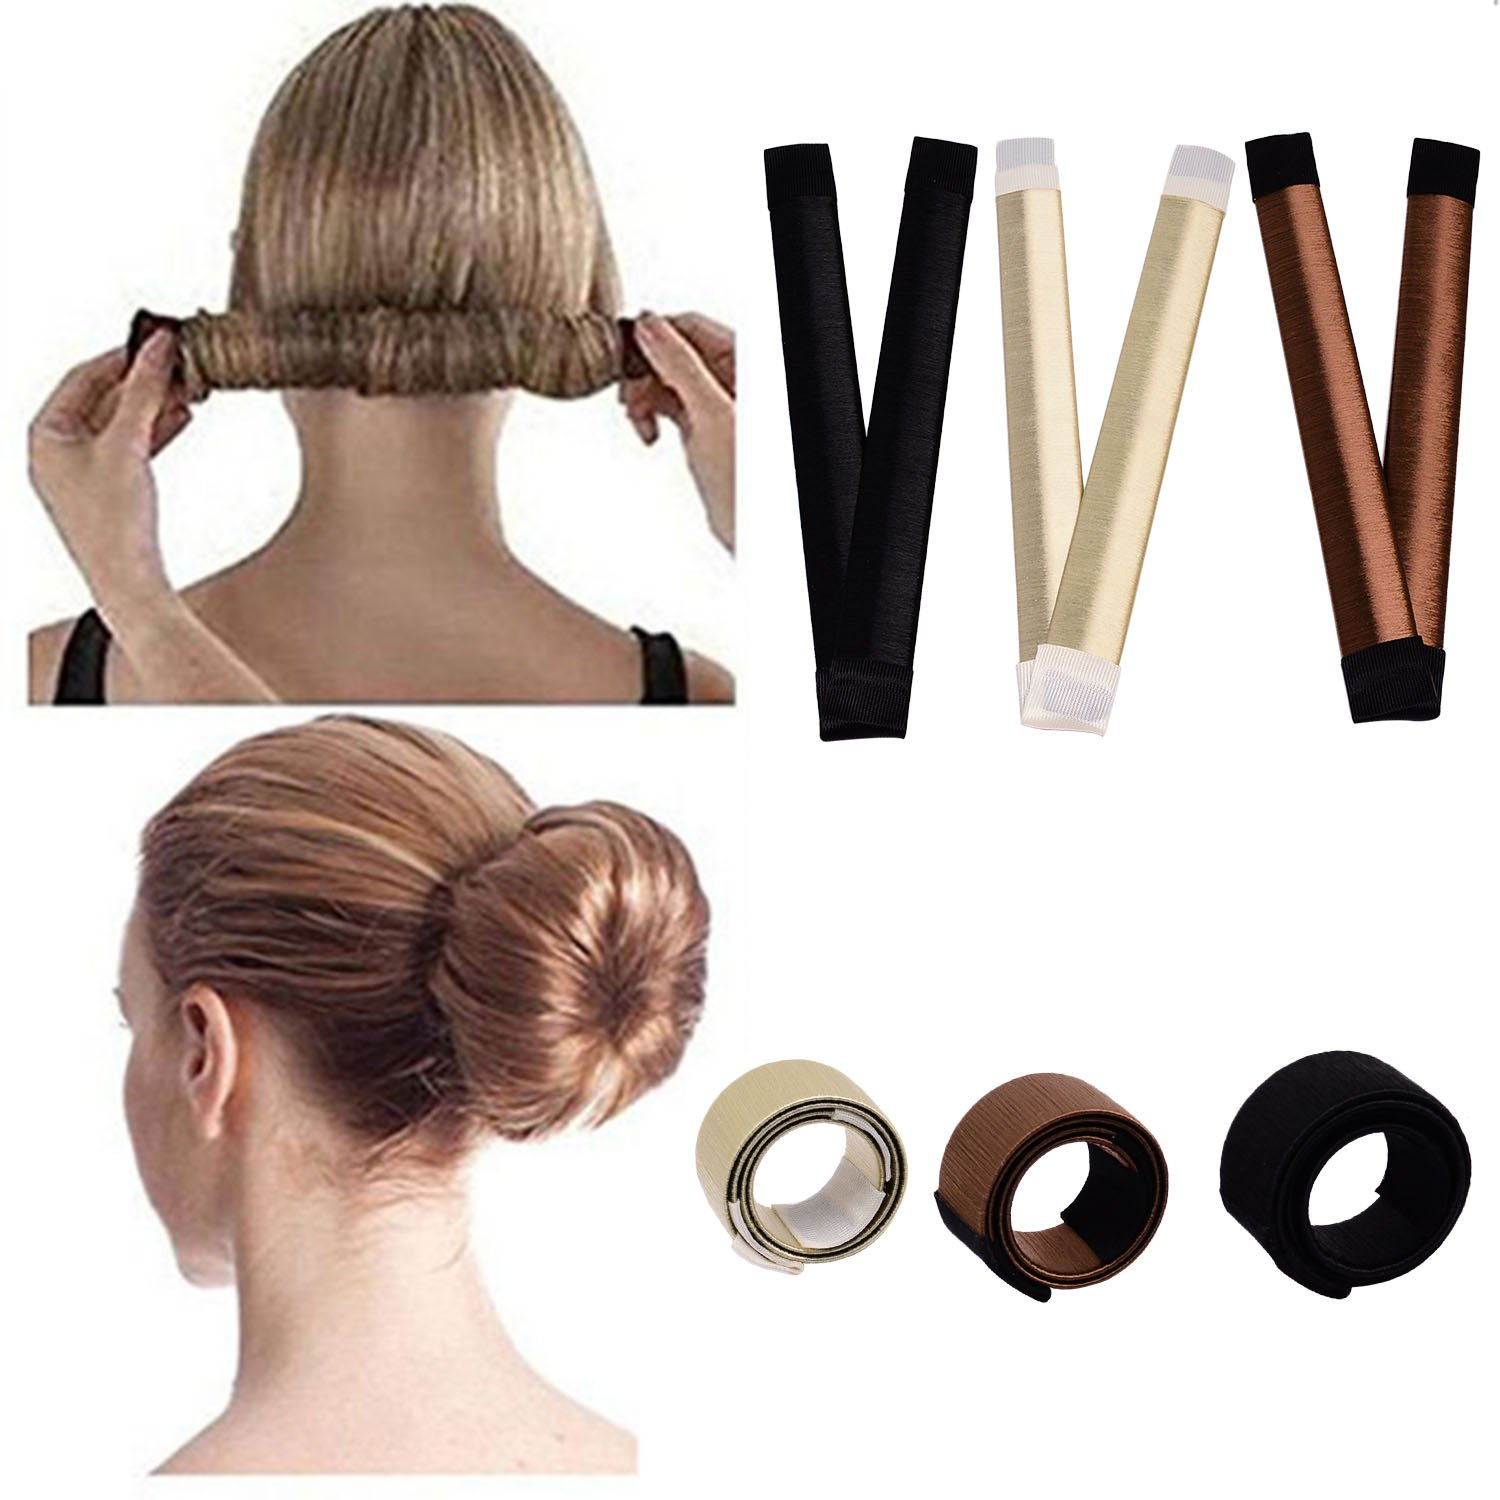 Hair bun maker-3 Pack Hair bun dount+10 Piece Professional Multicolor Plastic Hair Clips+Hair rope, Hair Styling Making DIY Curler Roller Hairstyle Tools by haomiao (Image #2)